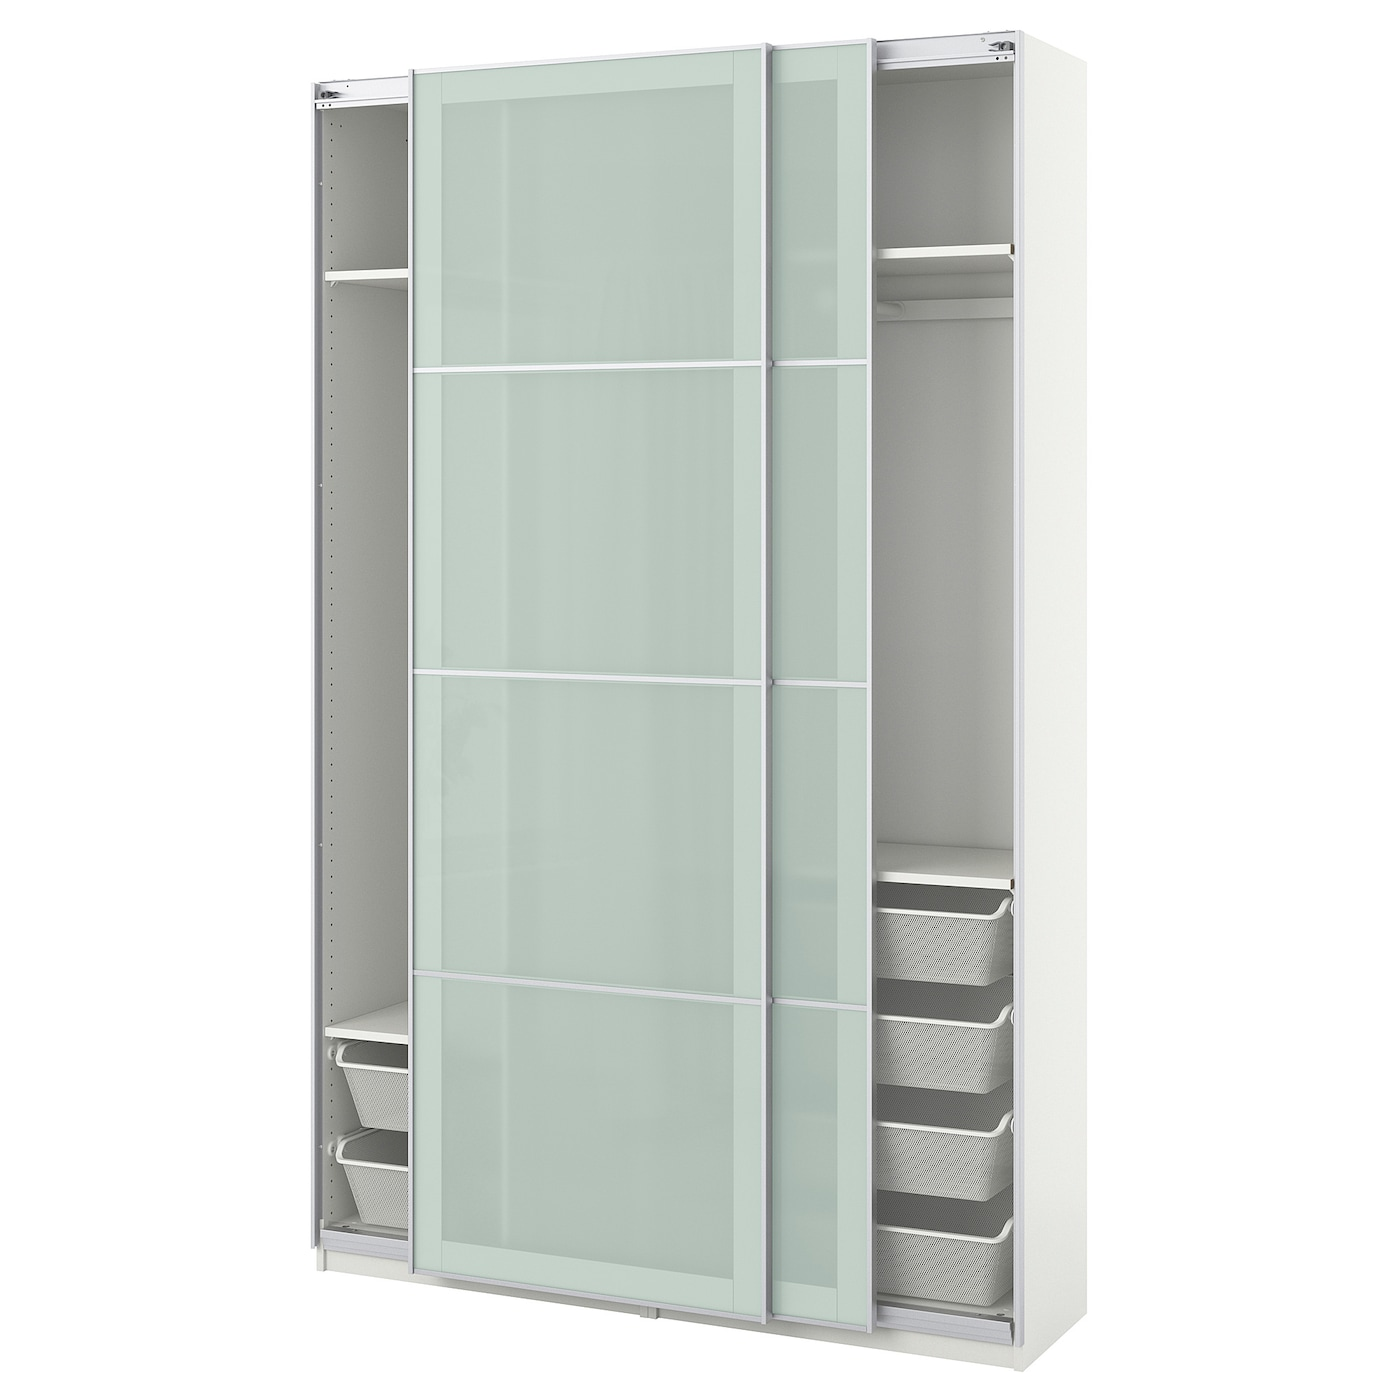 pax armoire penderie blanc sekken verre givr 150 x 44 x 236 cm ikea. Black Bedroom Furniture Sets. Home Design Ideas